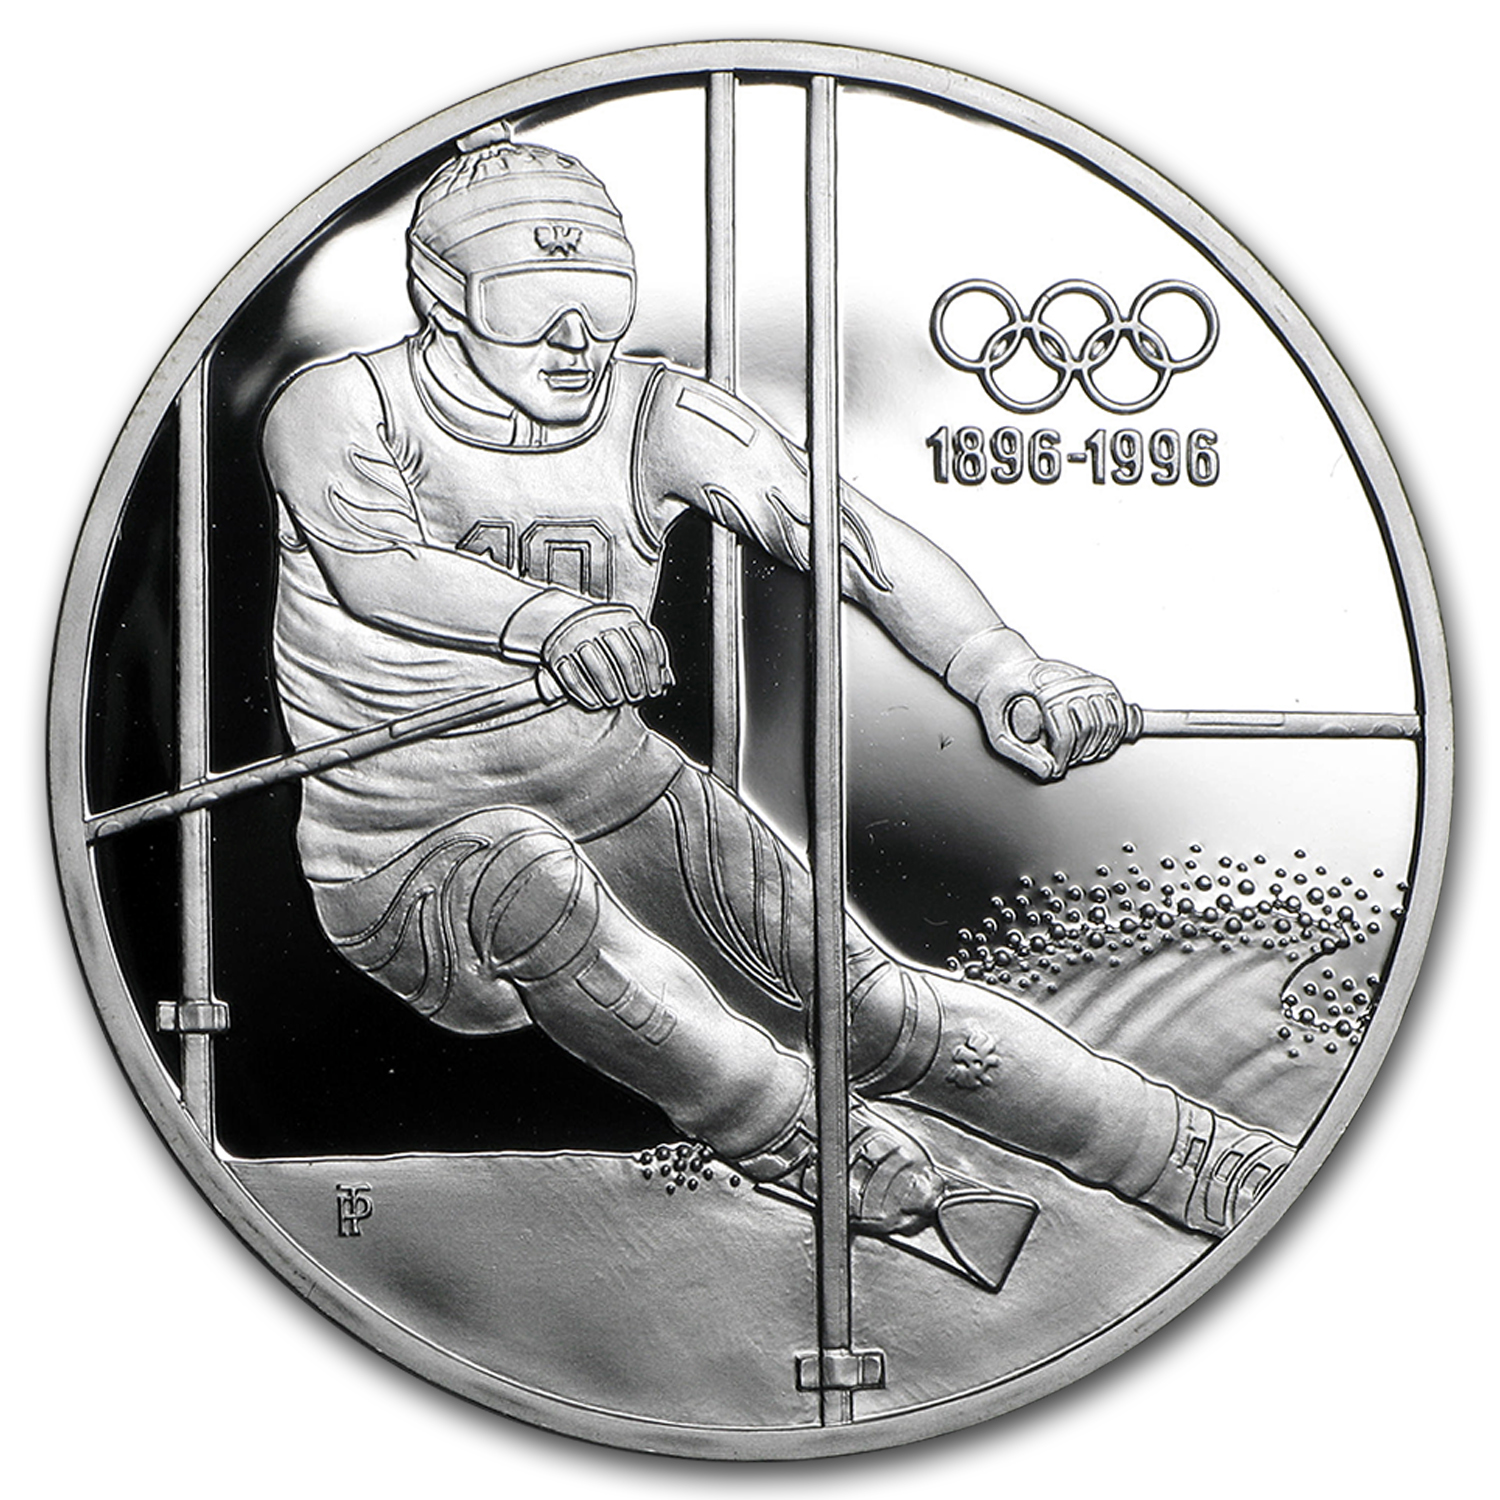 1995 Austria Silver 200 Schillings Olympics Proof